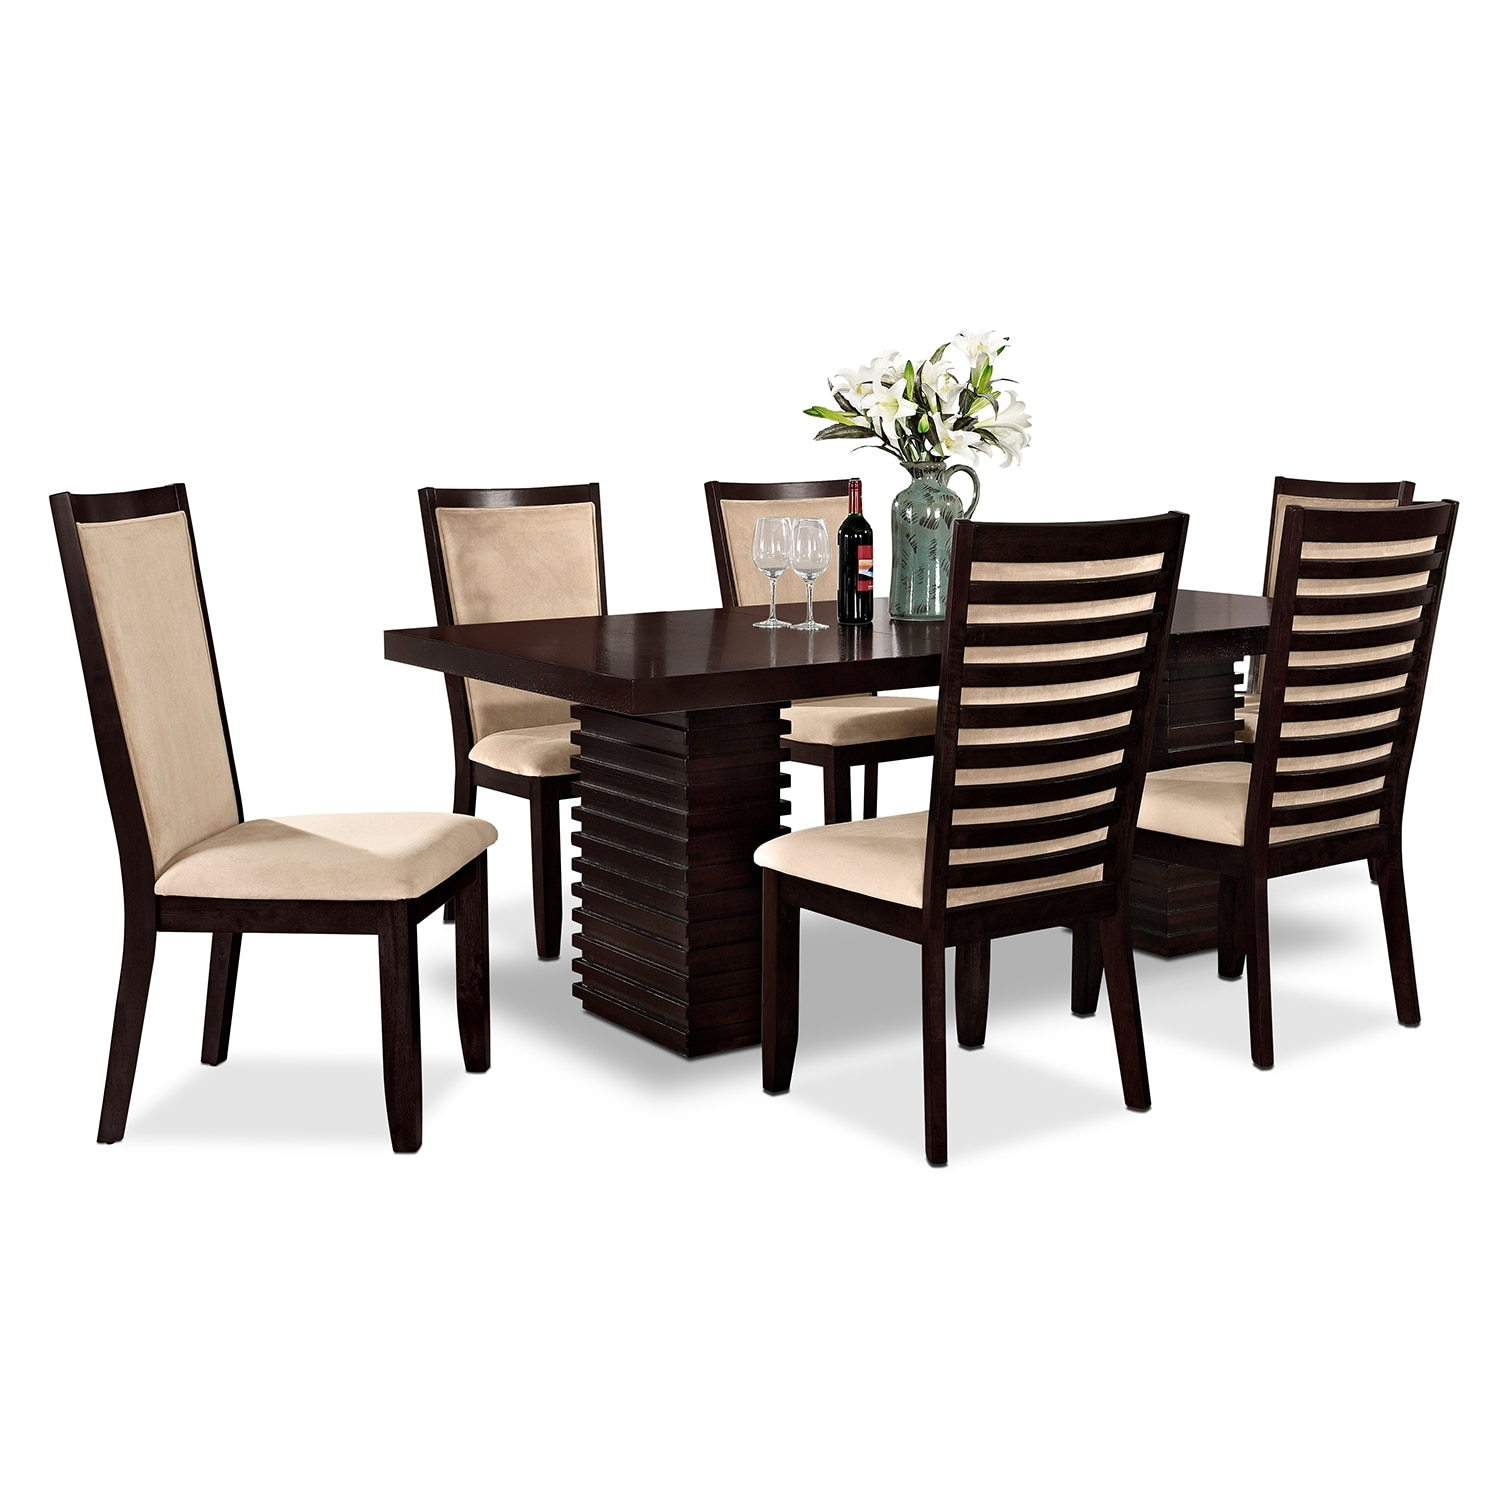 Impressive Value City Furniture Dining Room Sets: Paragon Table And 6 Chairs - Merlot And Camel